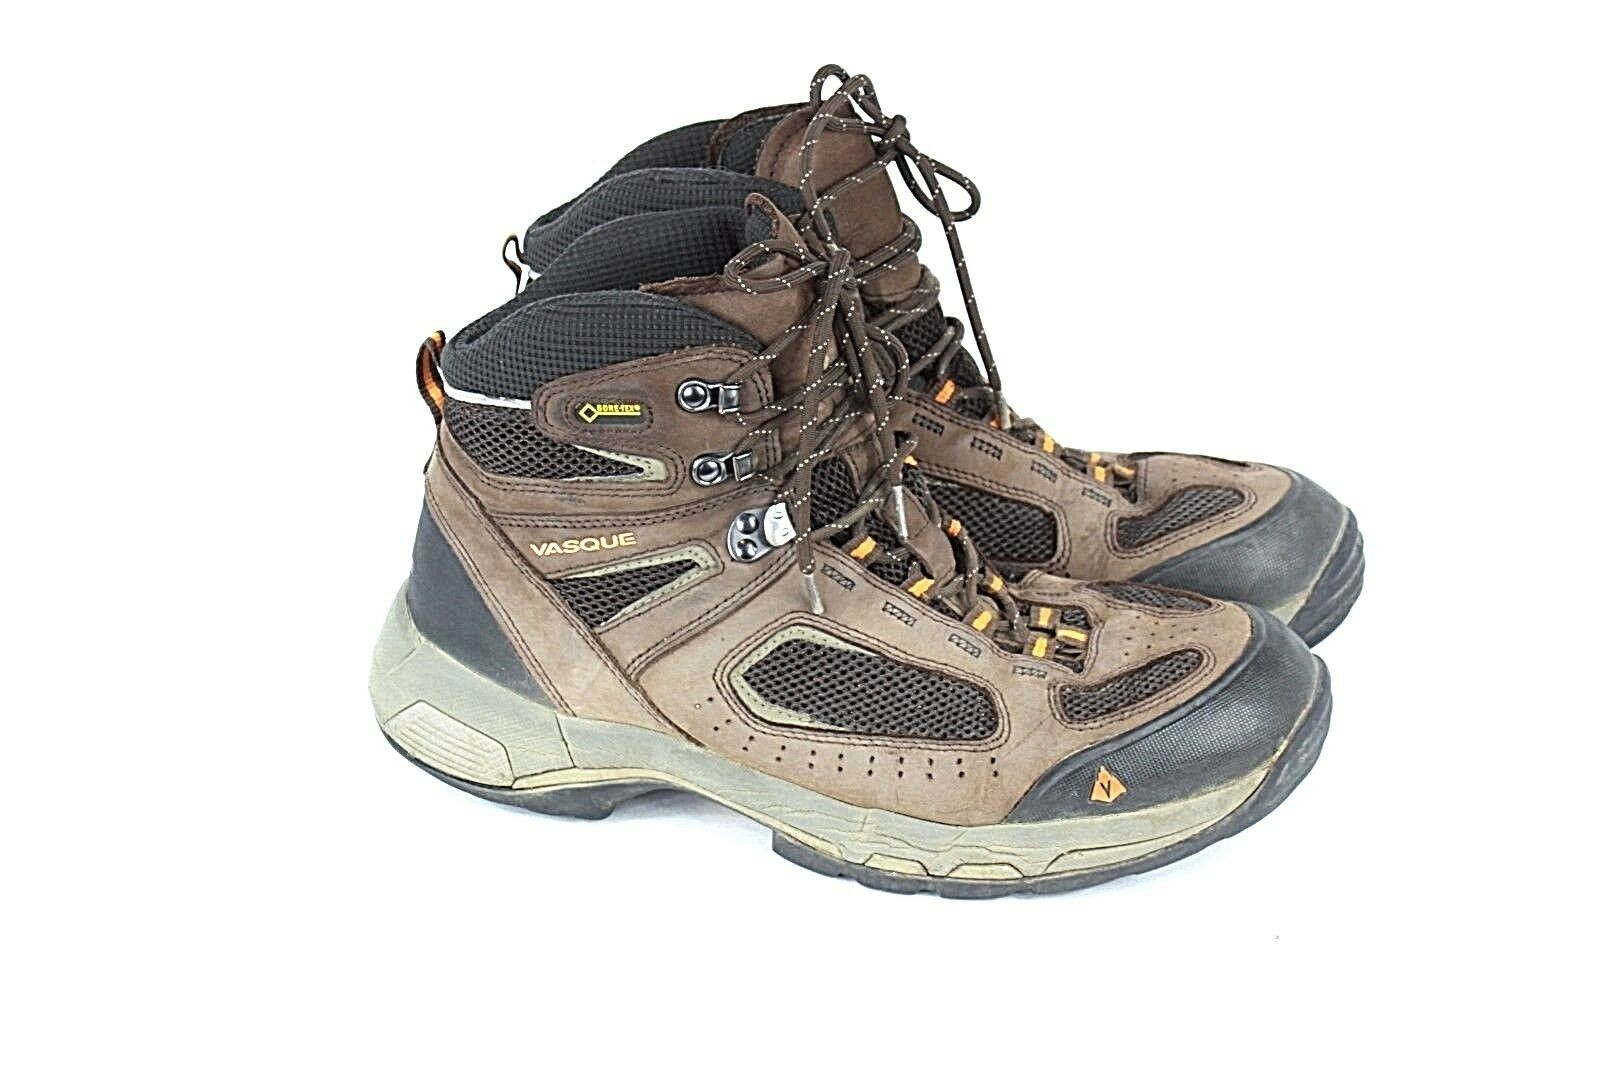 Vasque Men's Hiking Boots Size 11.5